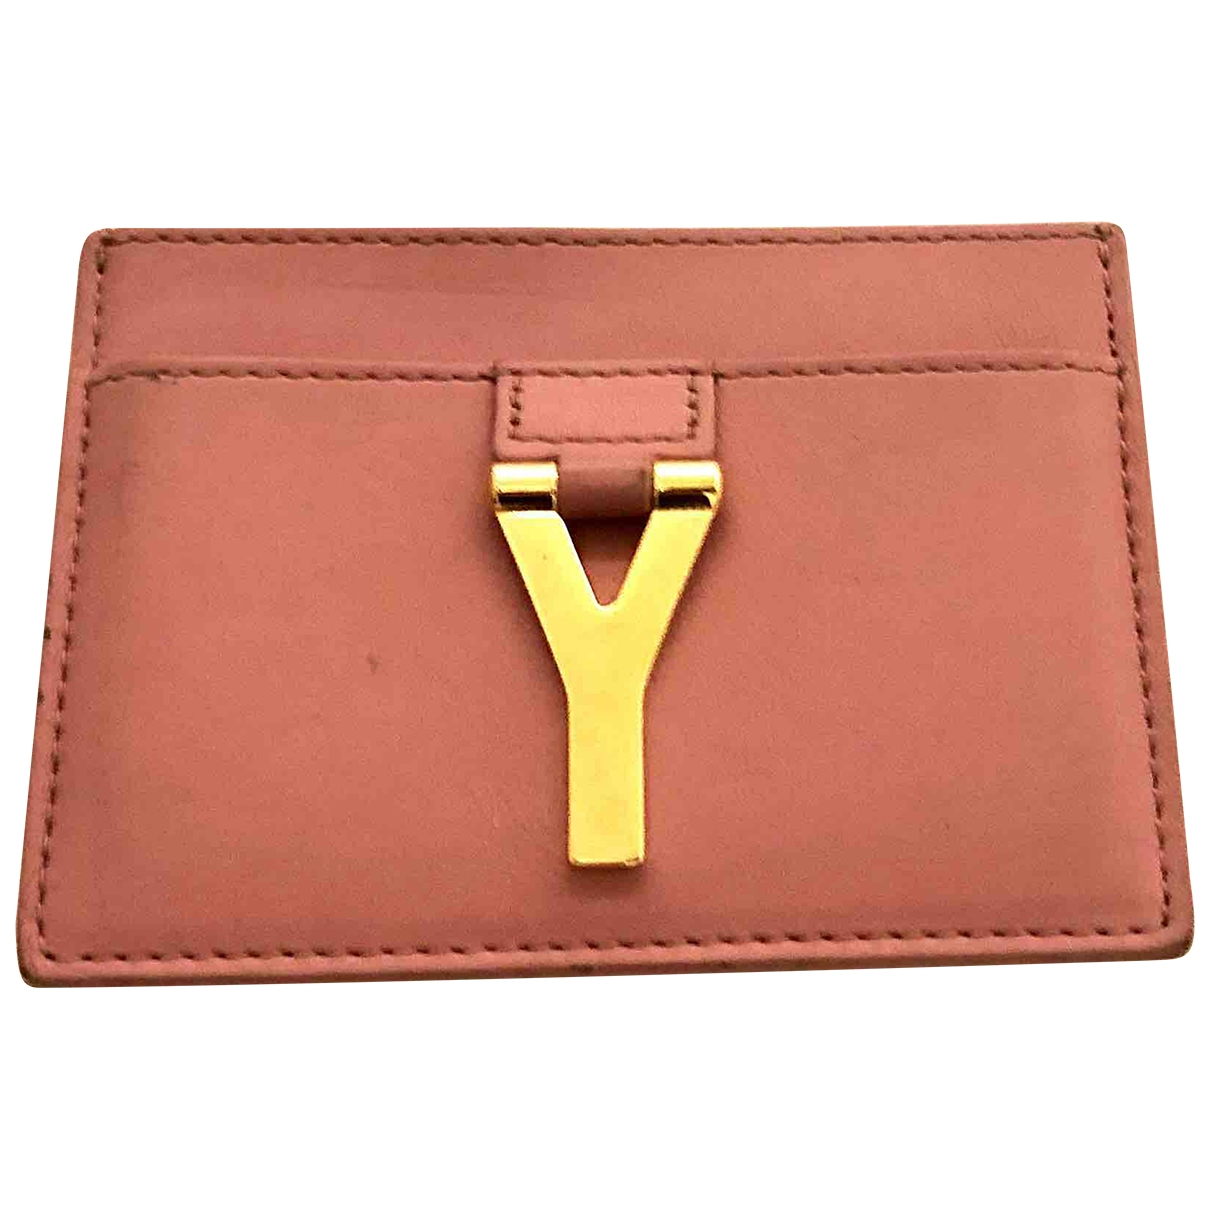 Saint Laurent Chyc Pink Leather Purses, wallet & cases for Women \N